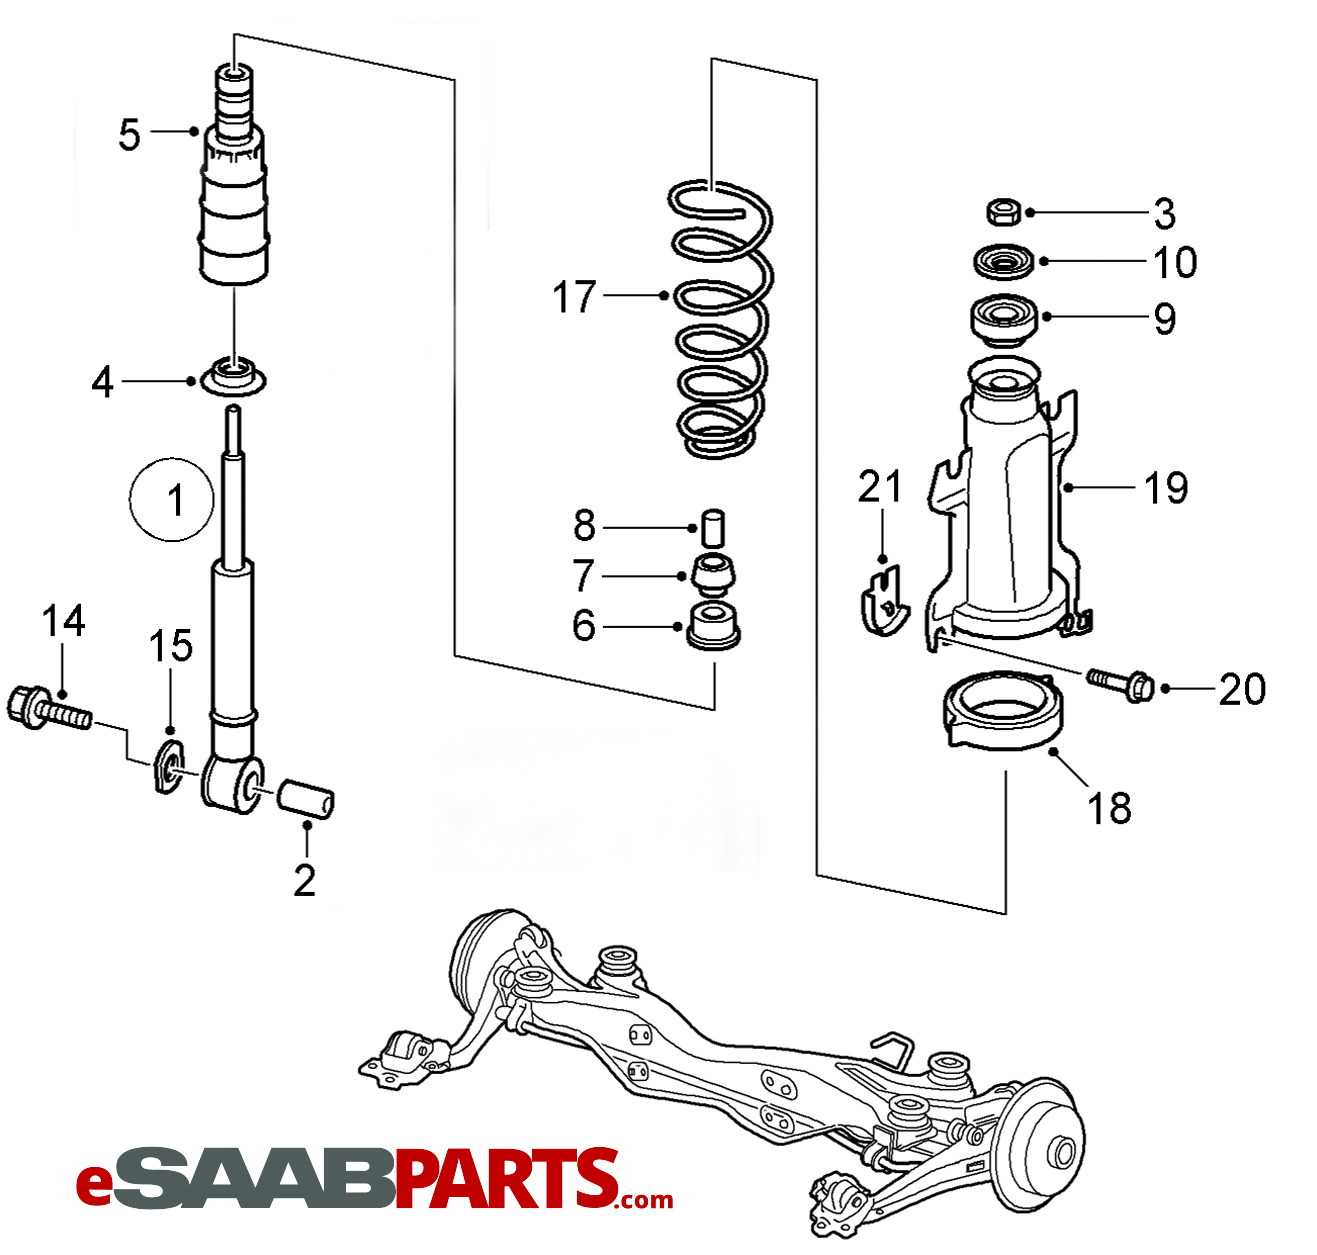 90539510 saab bellows genuine saab parts from esaabparts com rh esaabparts  com saab 900 parts diagram saab 97x parts diagram